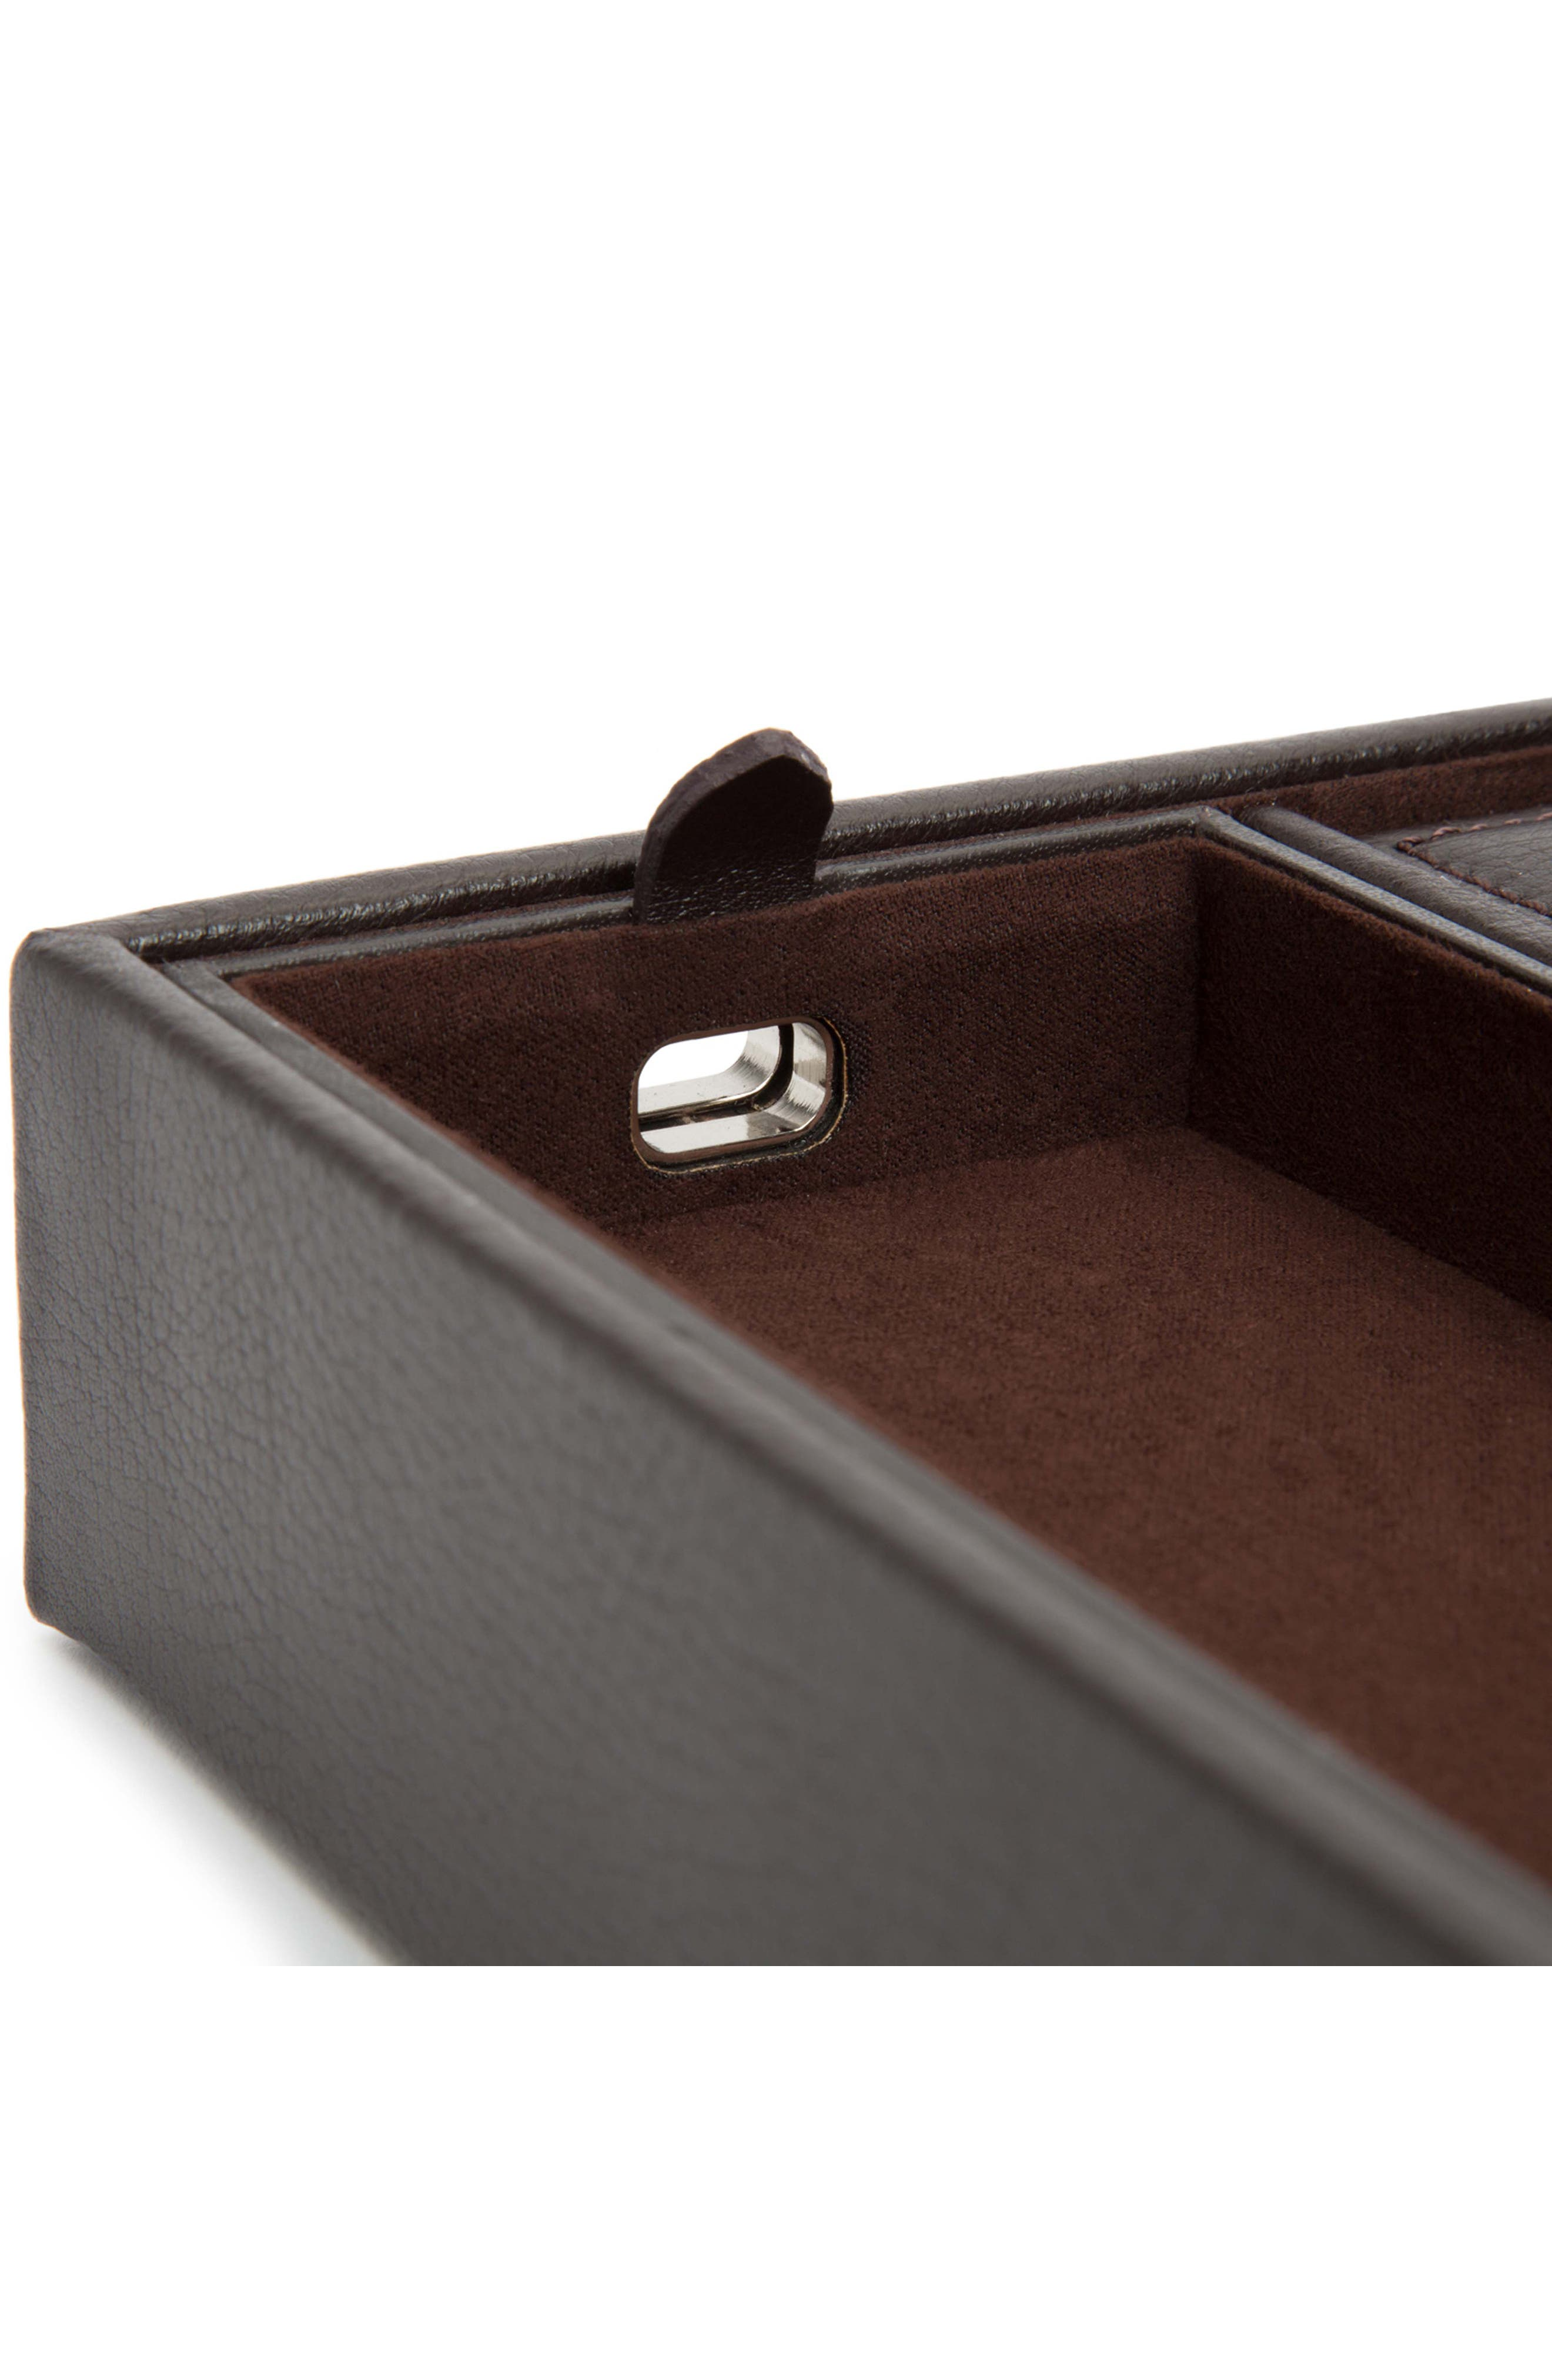 Blake Valet Tray & Watch Cuff,                             Alternate thumbnail 3, color,                             BROWN